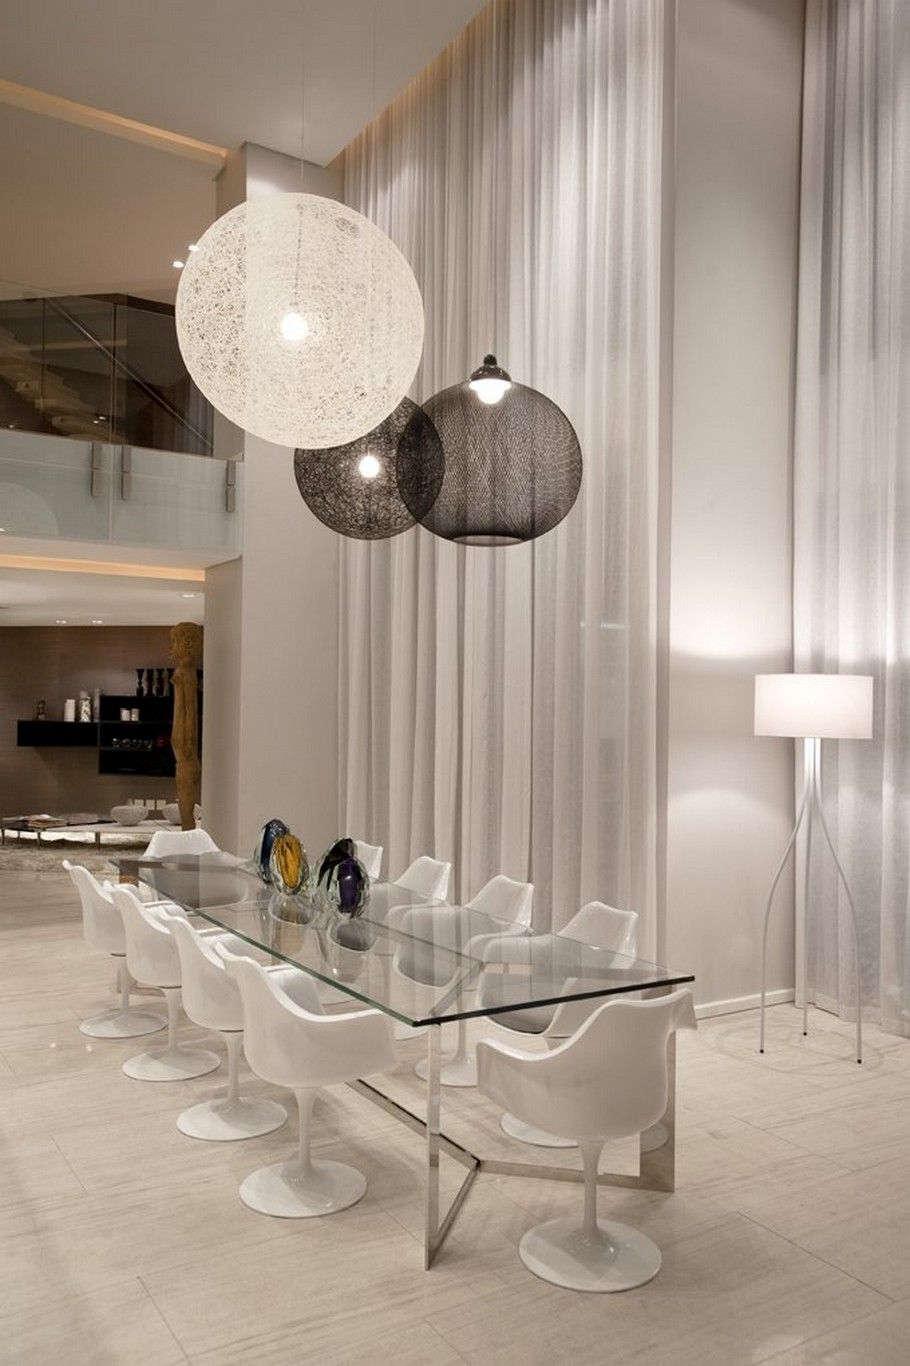 Love the lighting but not the plastic chairs ooh the floor tiles are pretty though